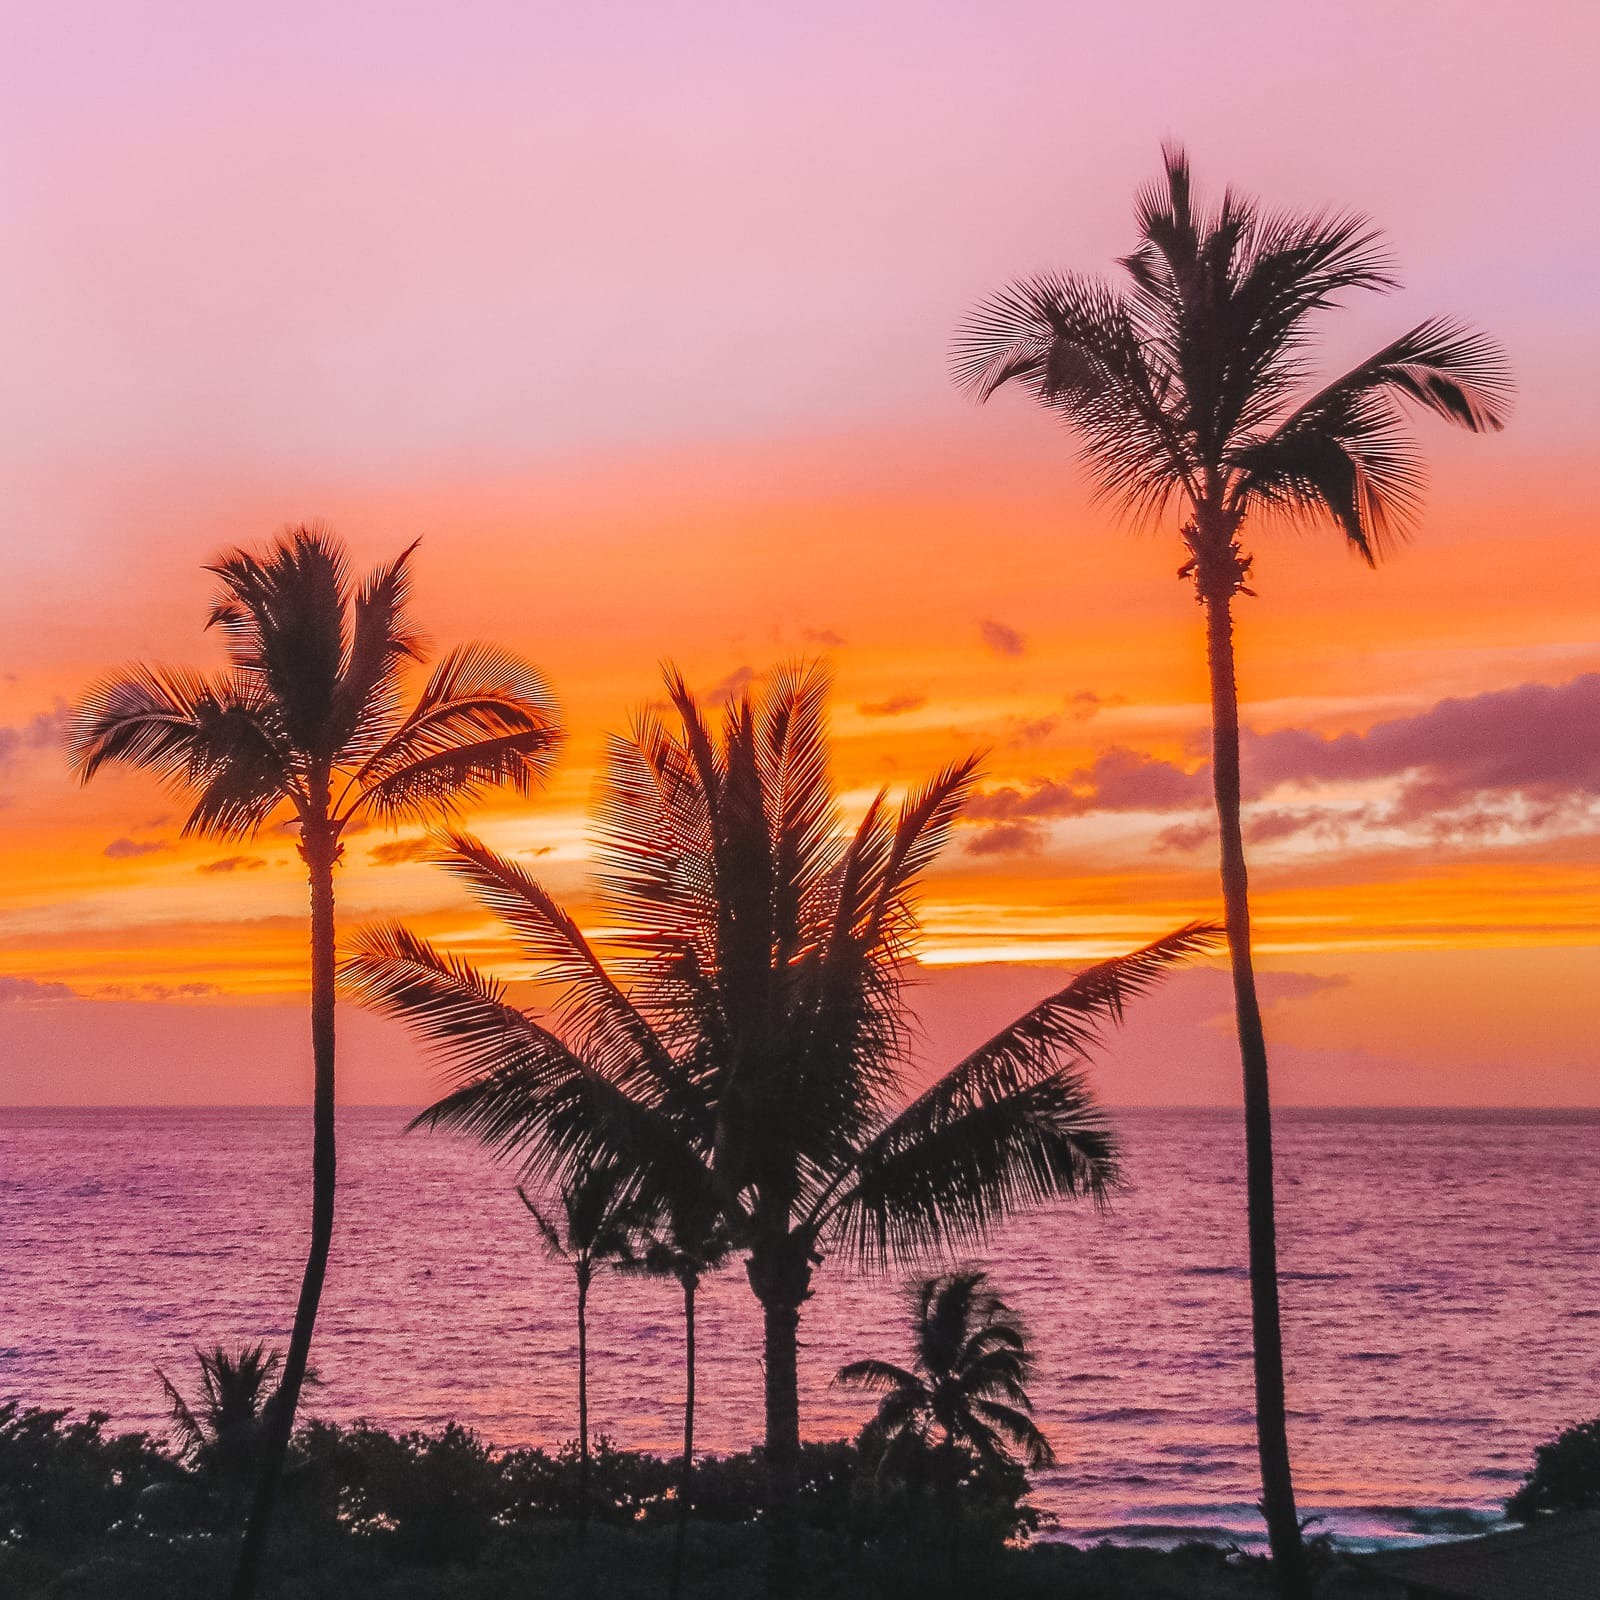 Maui Hawaii Beaches: 13 Best Beaches In Maui, Hawaii